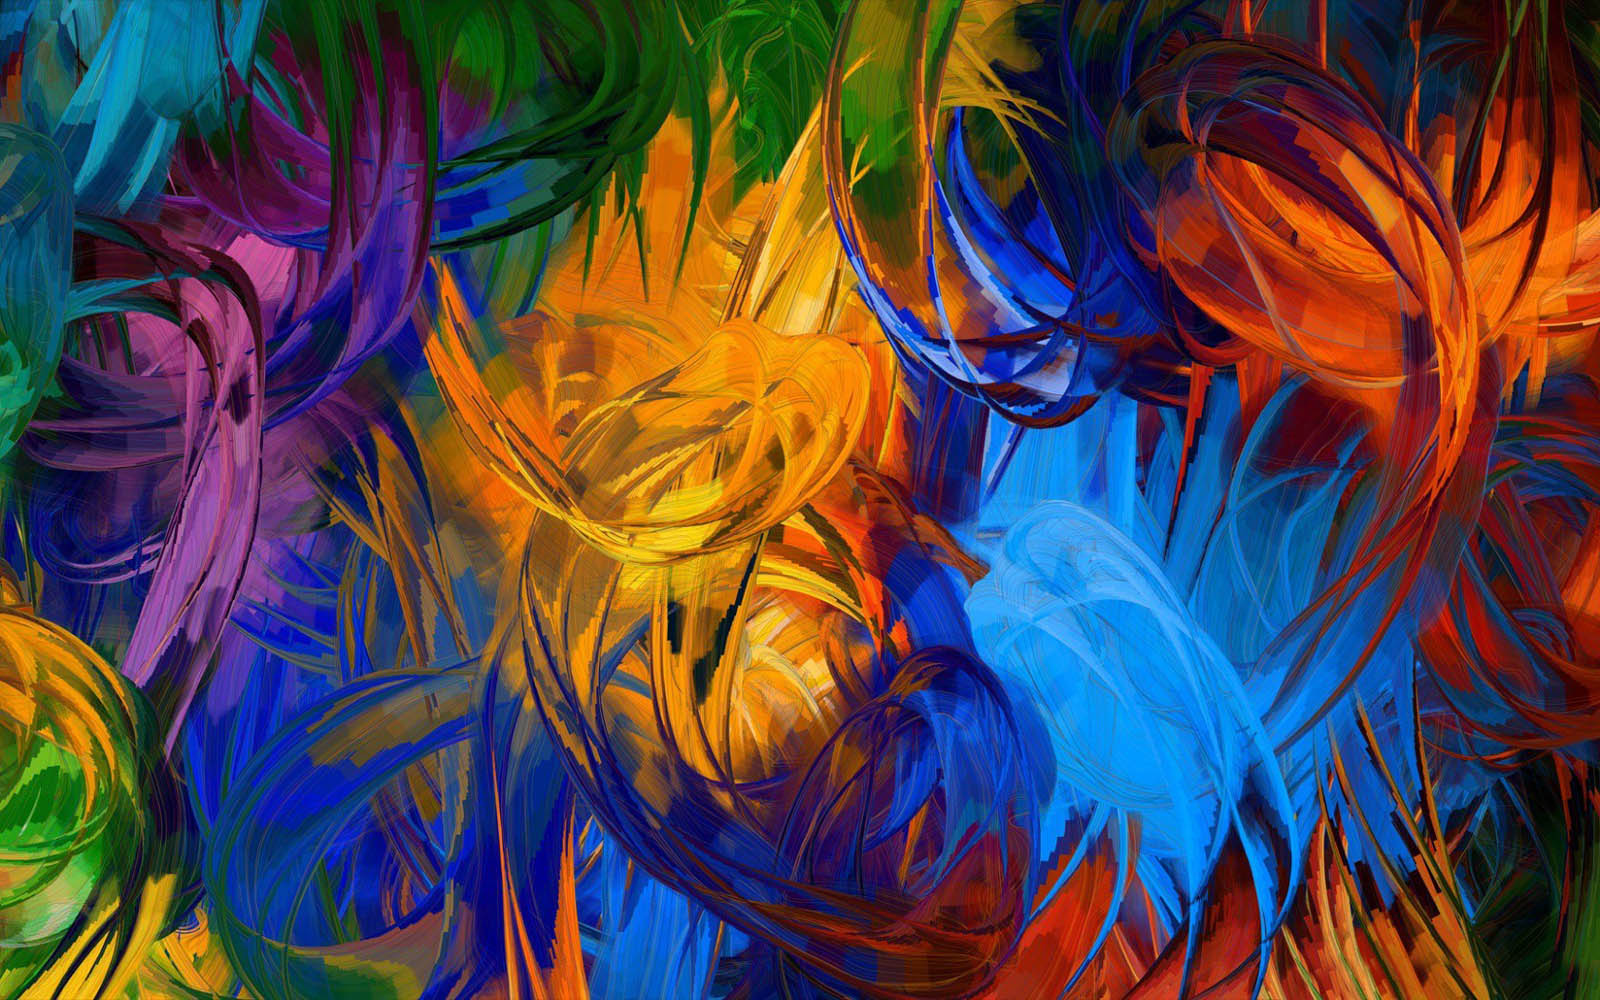 Desktop Wallpapers Abstract Paintings Desktop Backgrounds 1600x1000